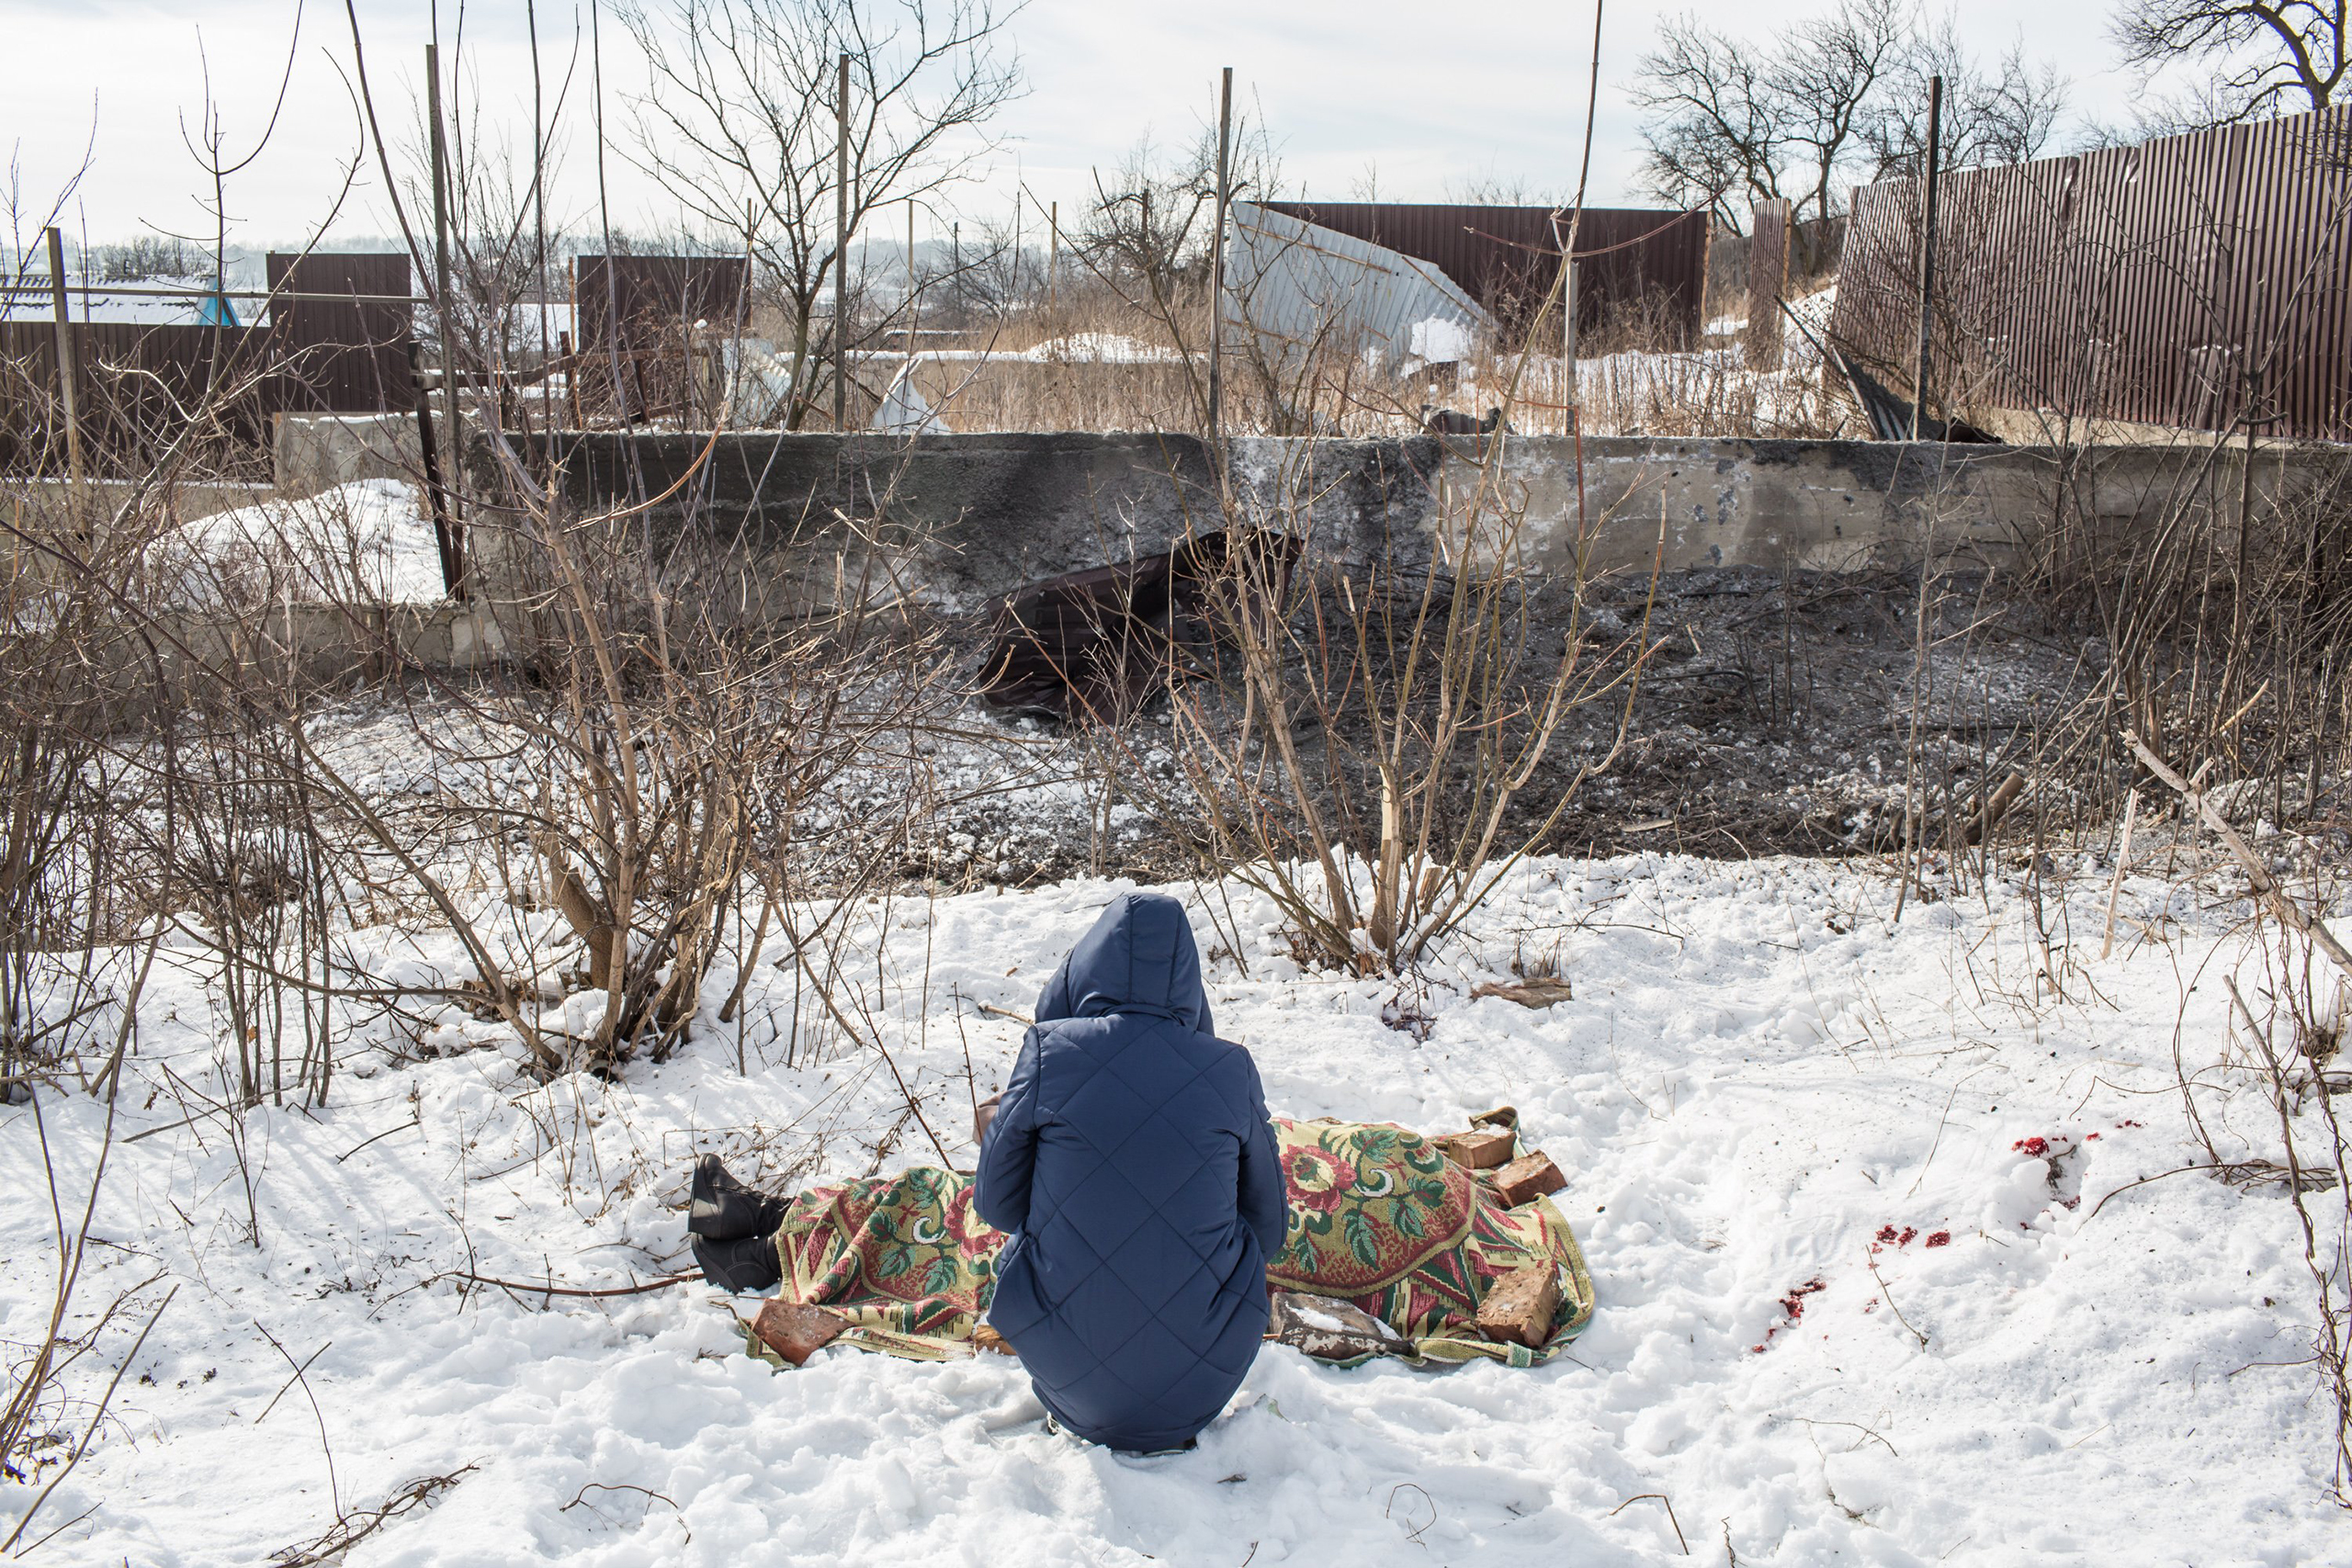 Nadiya Volkova, 24, grieves over the body of her mother Katya Volkova, 60, who was killed by shelling in Avdiivka, Ukraine, as she walked to a store early on Feb. 1, 2017.